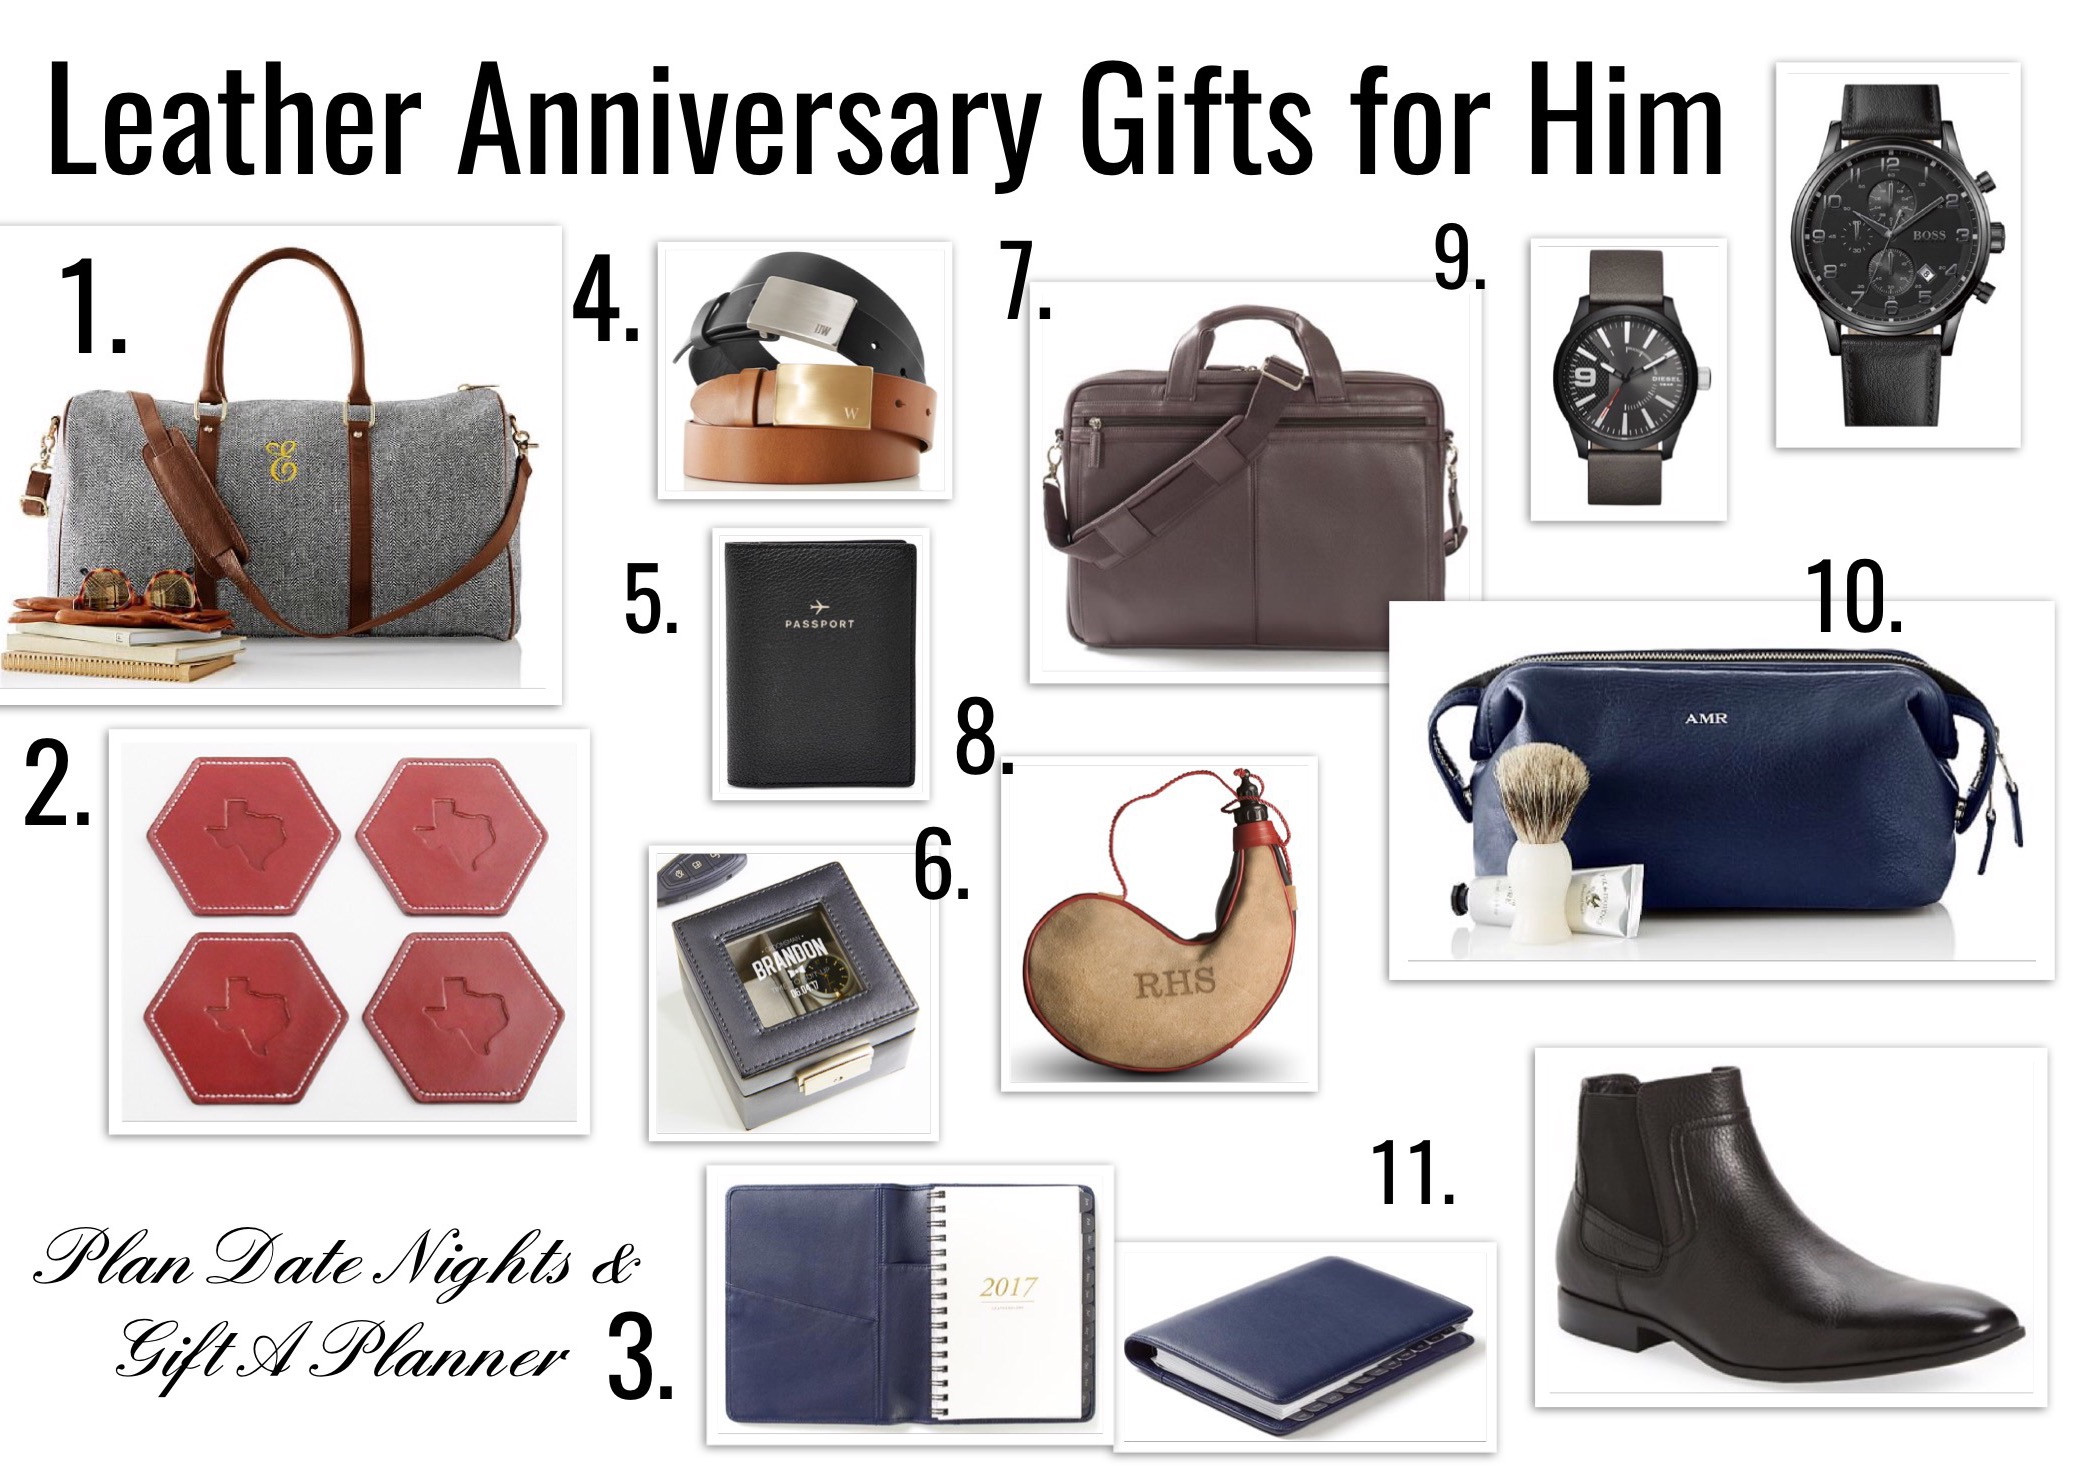 Best ideas about 3 Year Wedding Anniversary Gift Ideas For Him . Save or Pin 3 Year Anniversary Leather Gift Ideas For Him Now.